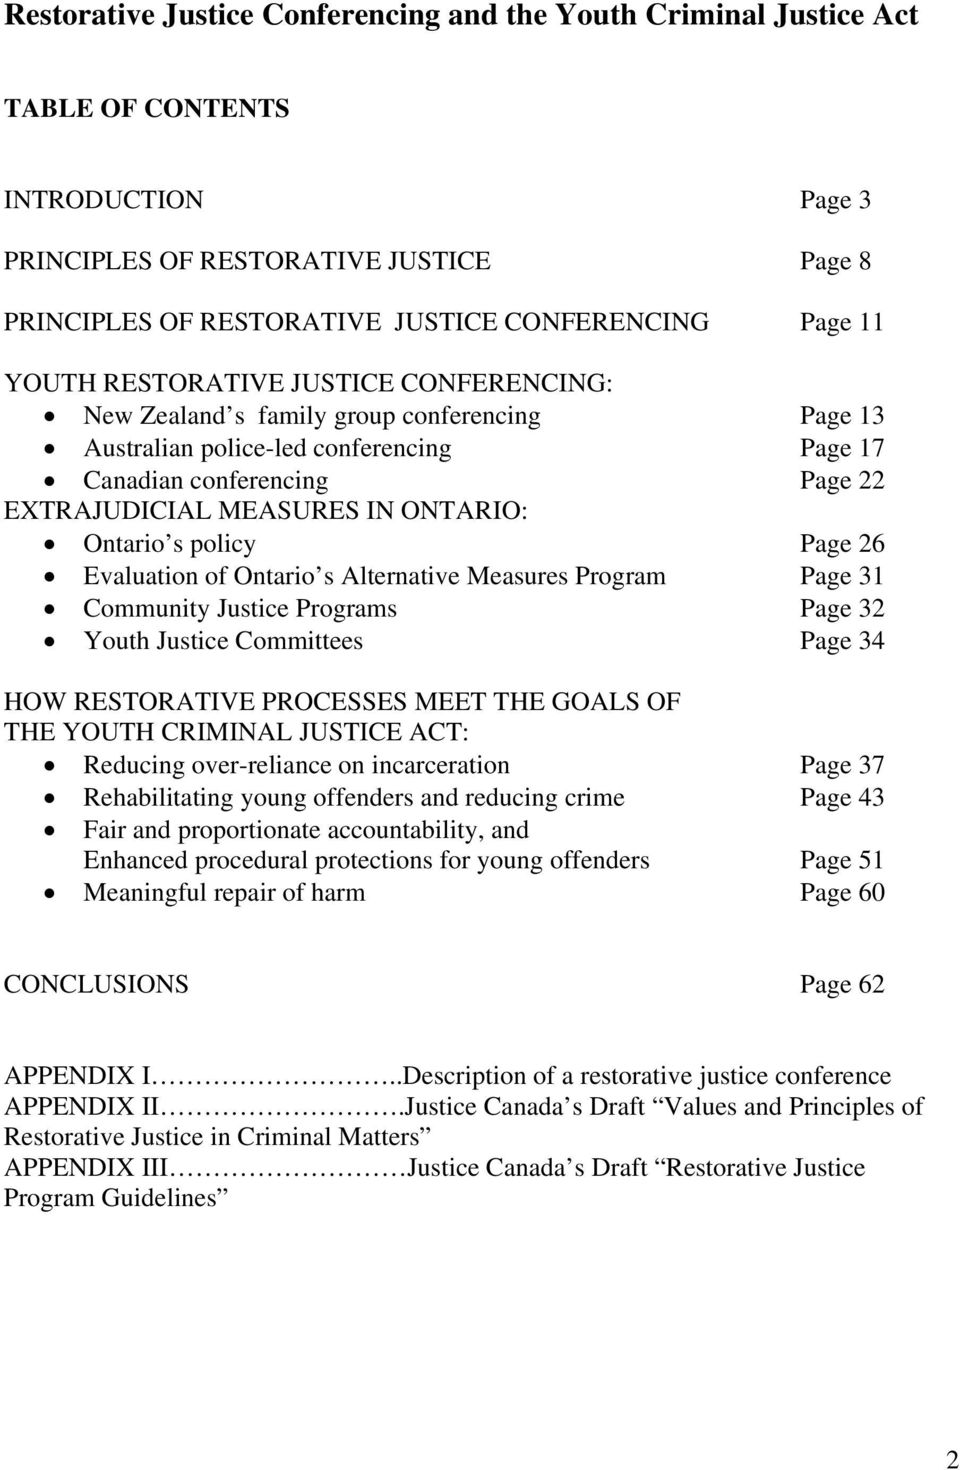 Ontario s policy Page 26 Evaluation of Ontario s Alternative Measures Program Page 31 Community Justice Programs Page 32 Youth Justice Committees Page 34 HOW RESTORATIVE PROCESSES MEET THE GOALS OF